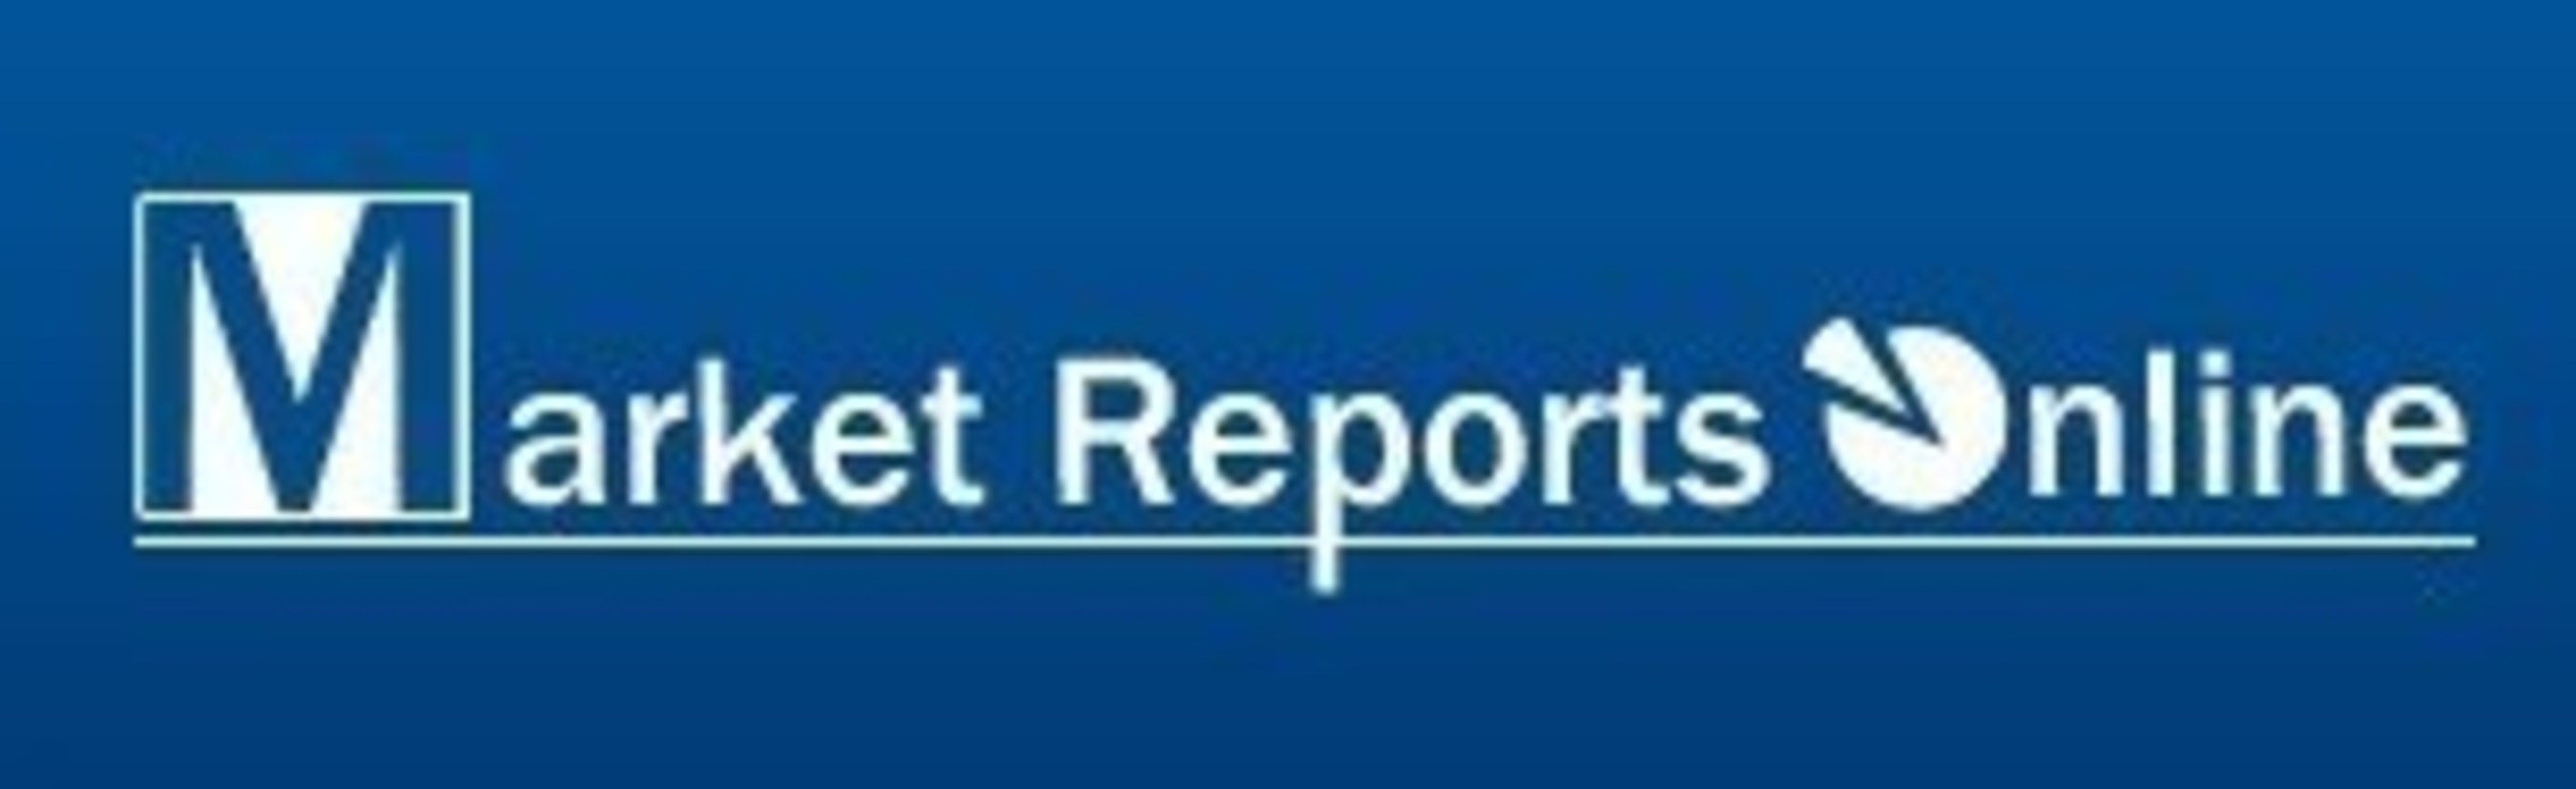 2019 Worldwide Wi-Fi Connected Devices Market Shipment Forecasts & Analysis